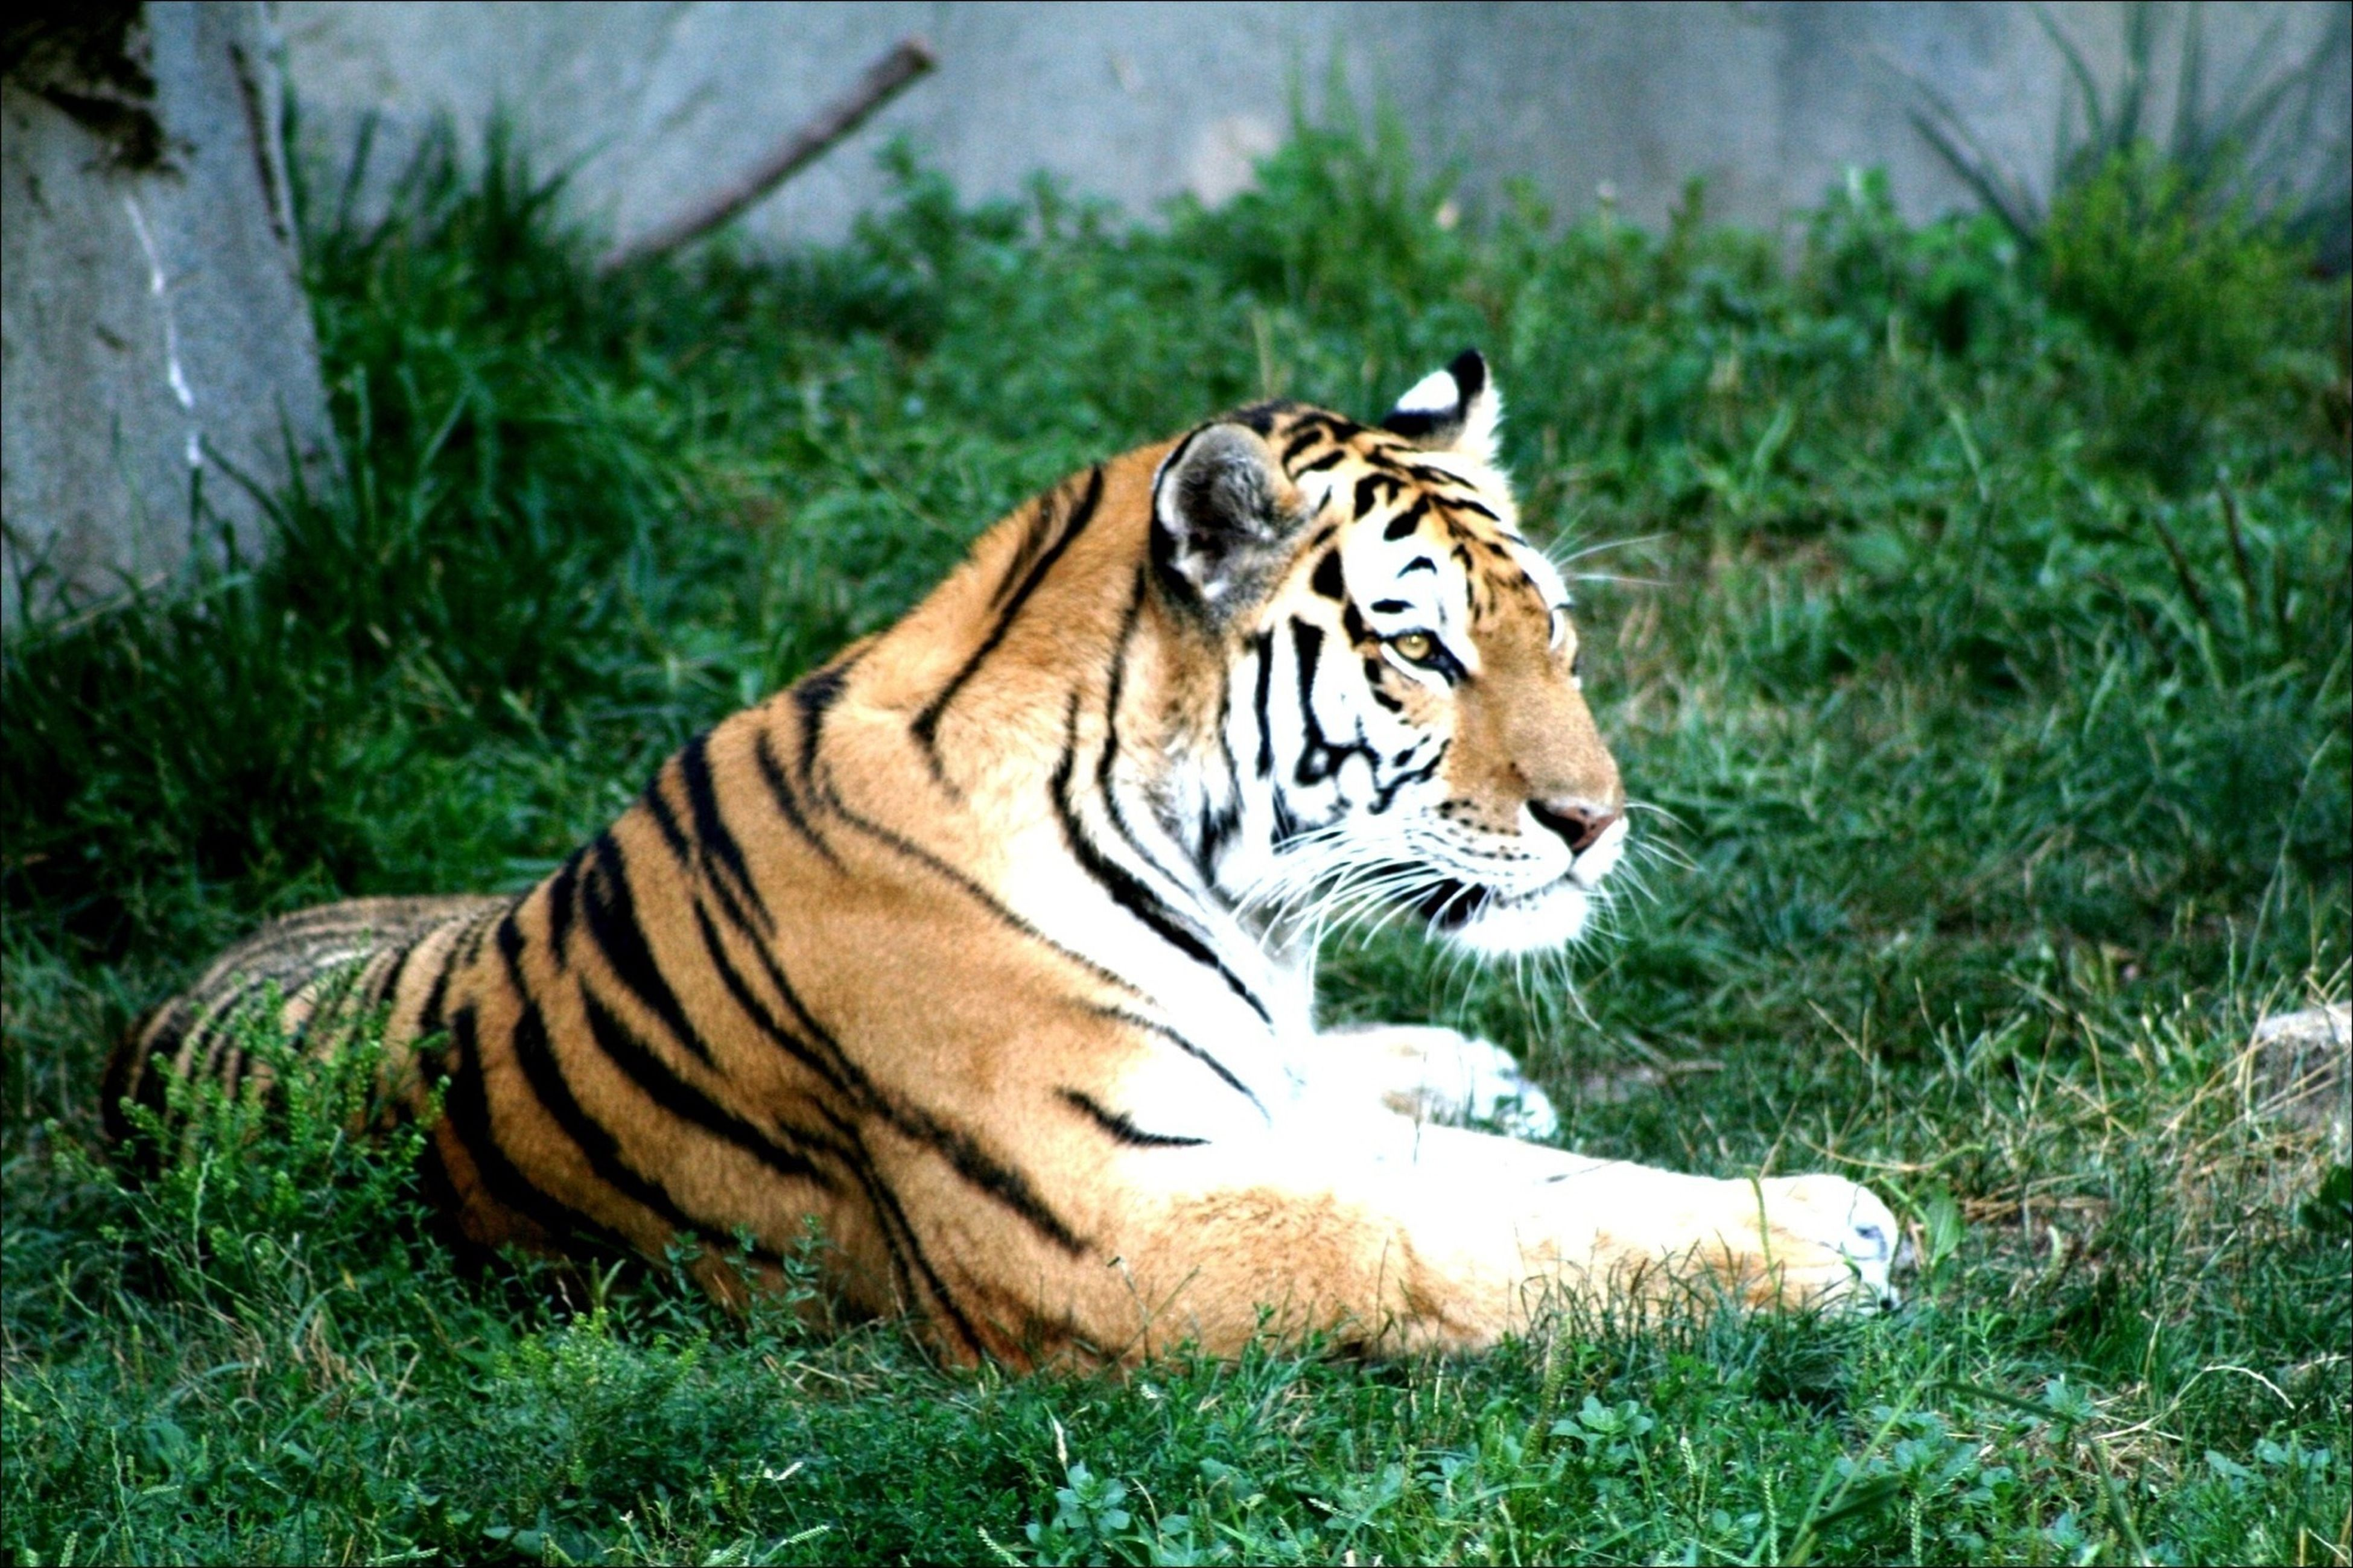 animal themes, one animal, tiger, mammal, animals in the wild, animal markings, wildlife, safari animals, grass, relaxation, undomesticated cat, big cat, field, lying down, focus on foreground, plant, forest, day, nature, endangered species